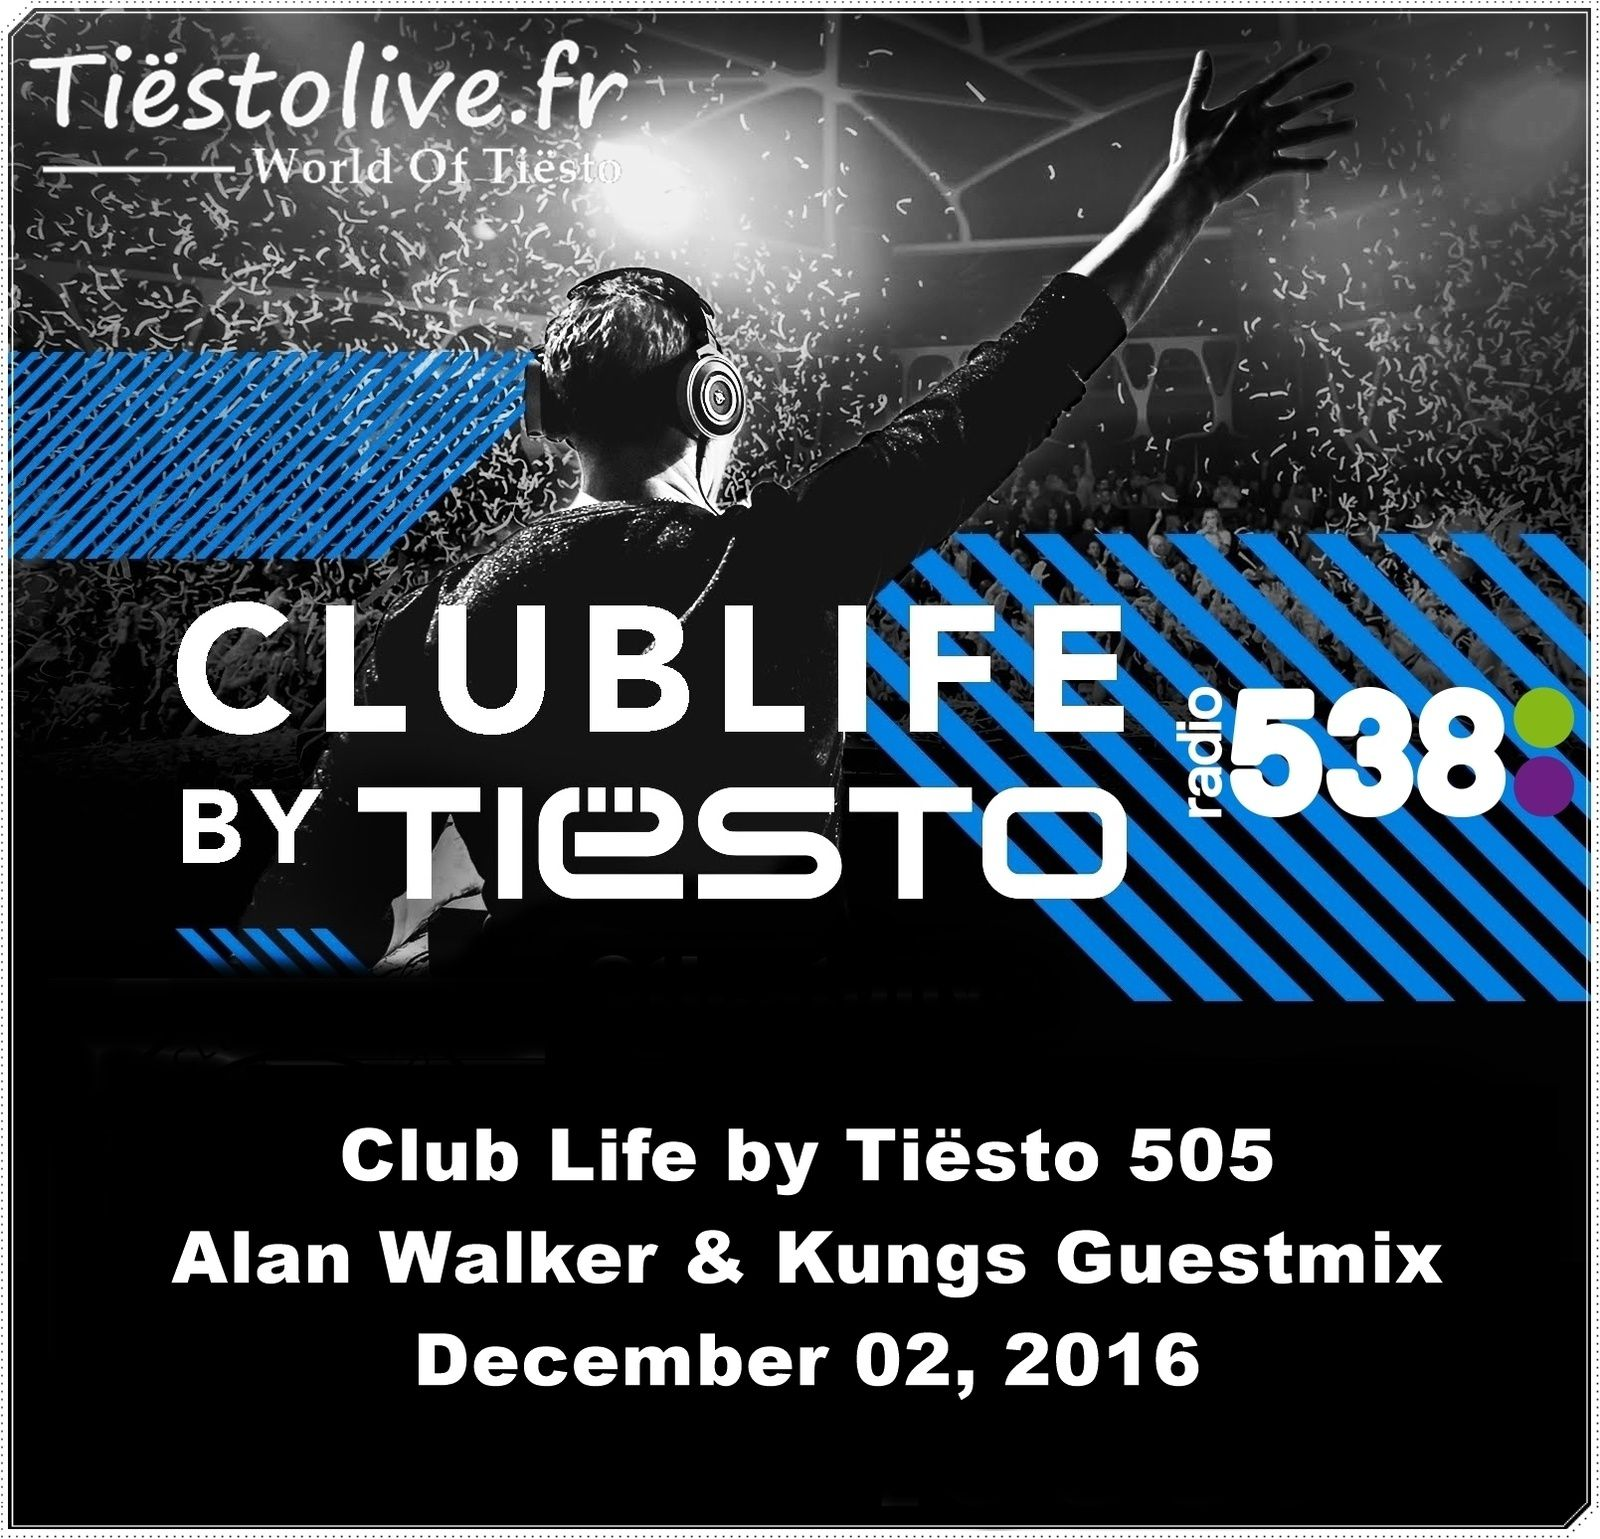 Club Life by Tiësto 505 - Alan Walker &amp&#x3B; Kungs Guestmix - December 02, 2016